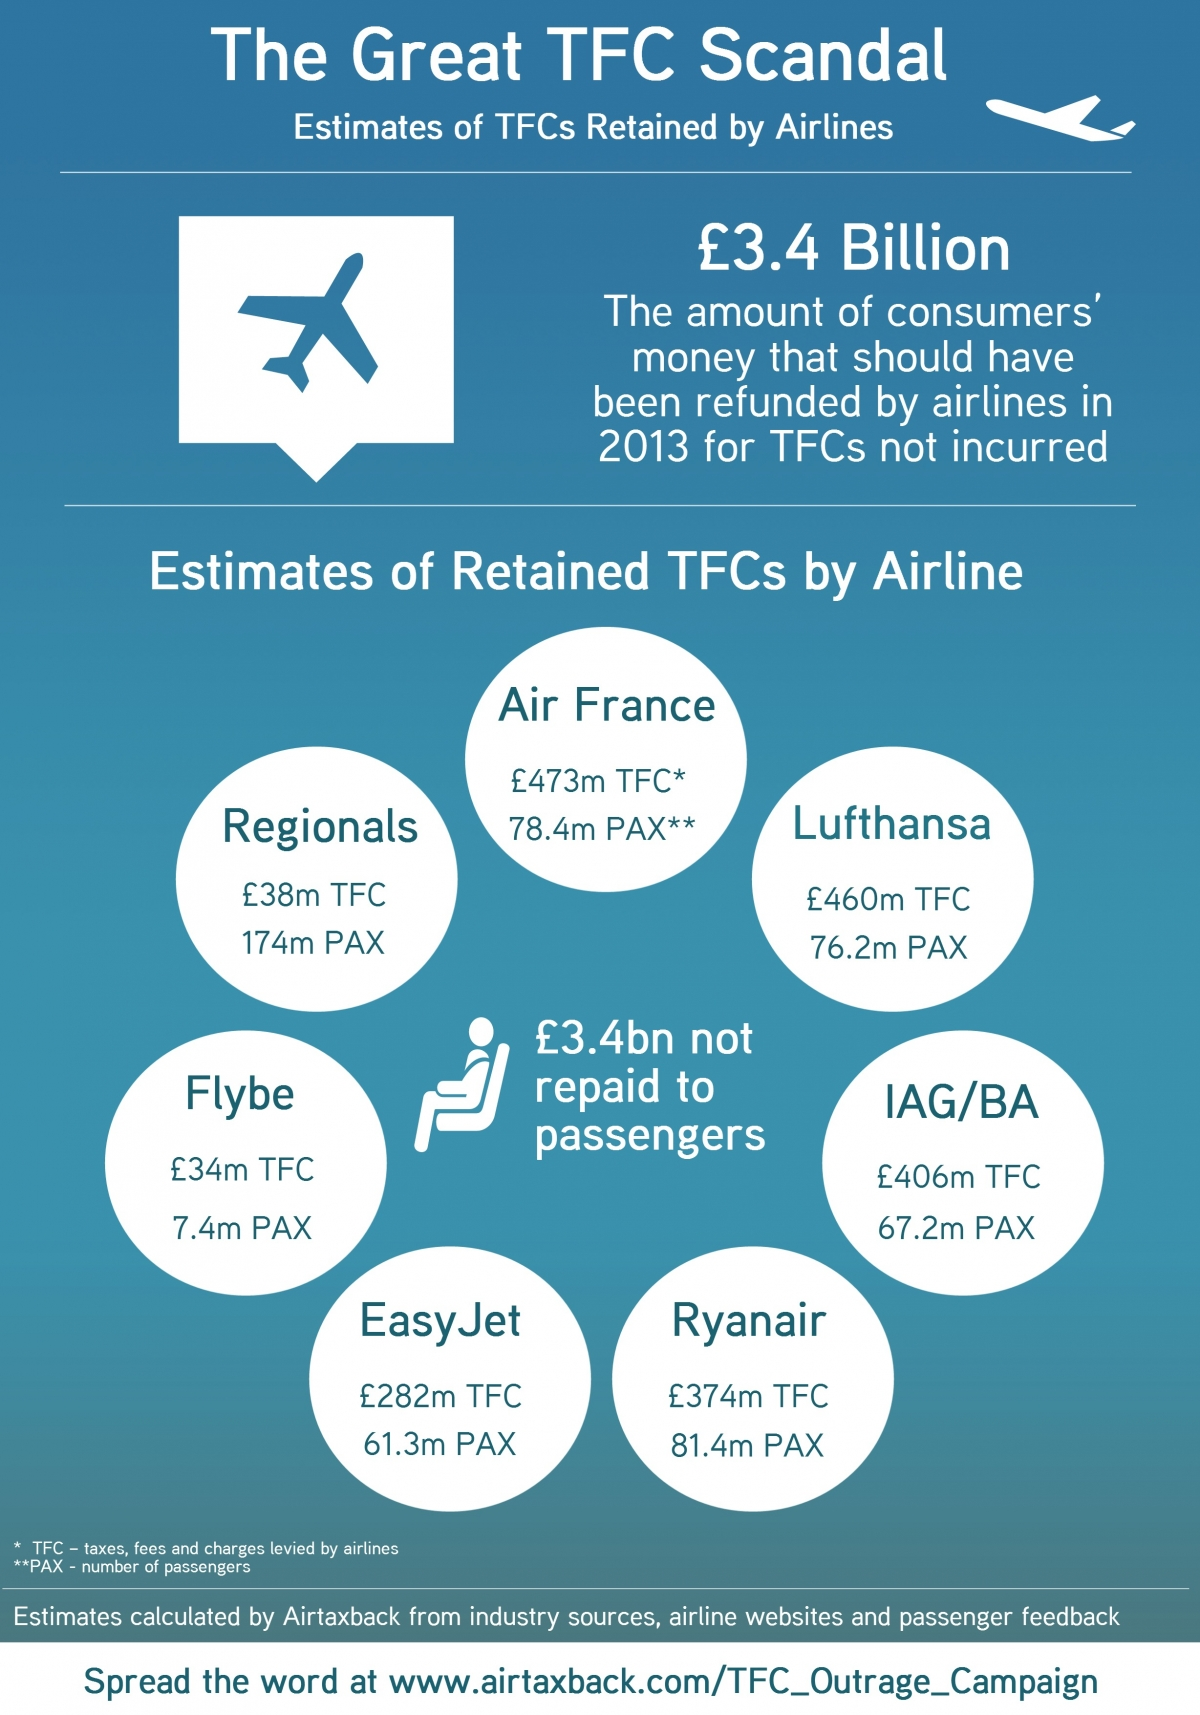 European Airlines Hold £3.4bn in Unpaid Passengers' Taxes and Charges in 2013